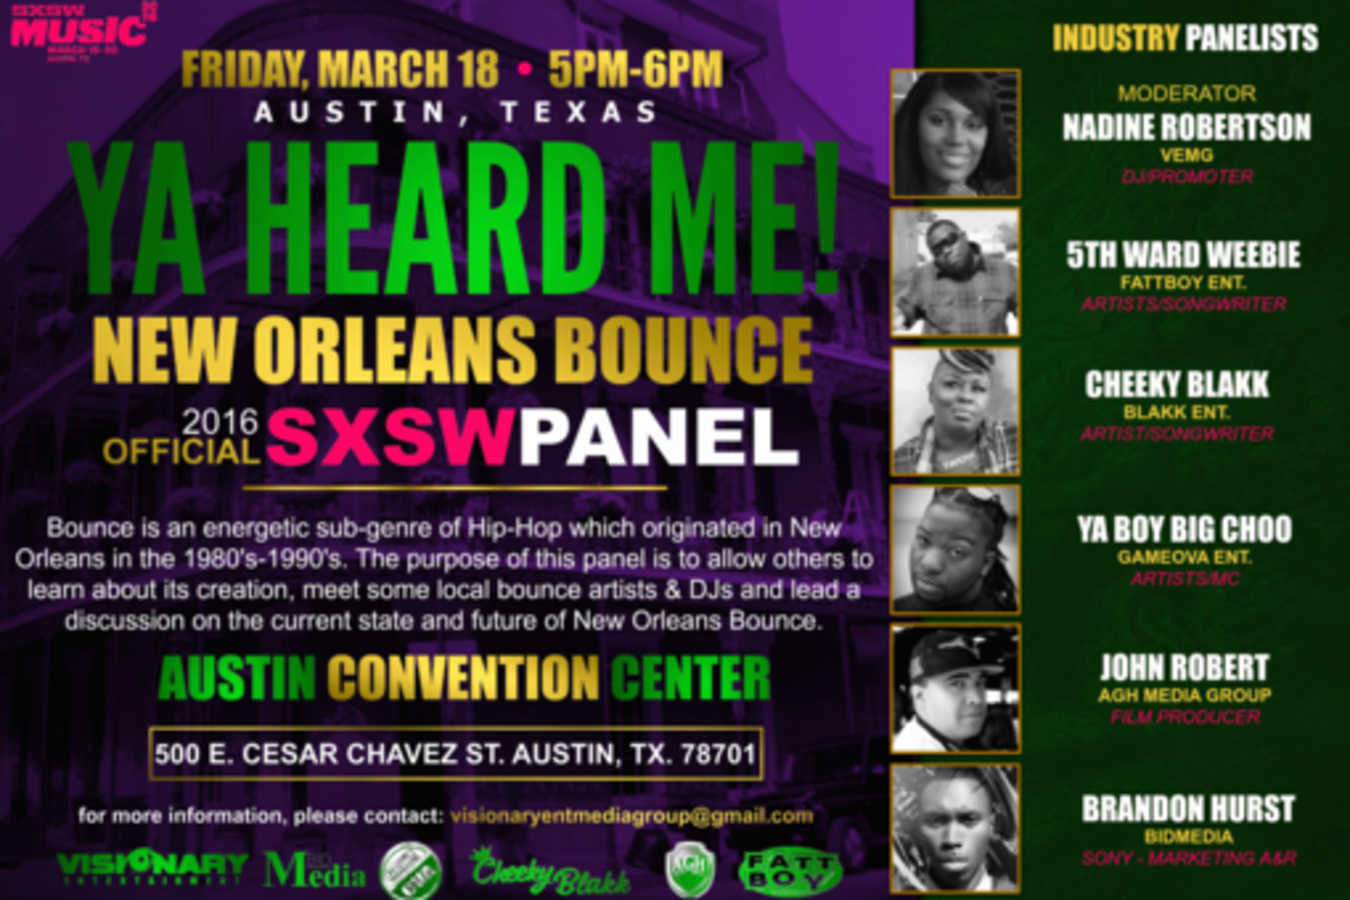 Round table discussion - Ya Heard Me New Orleans Bounce Sxsw 2016 Event Schedule